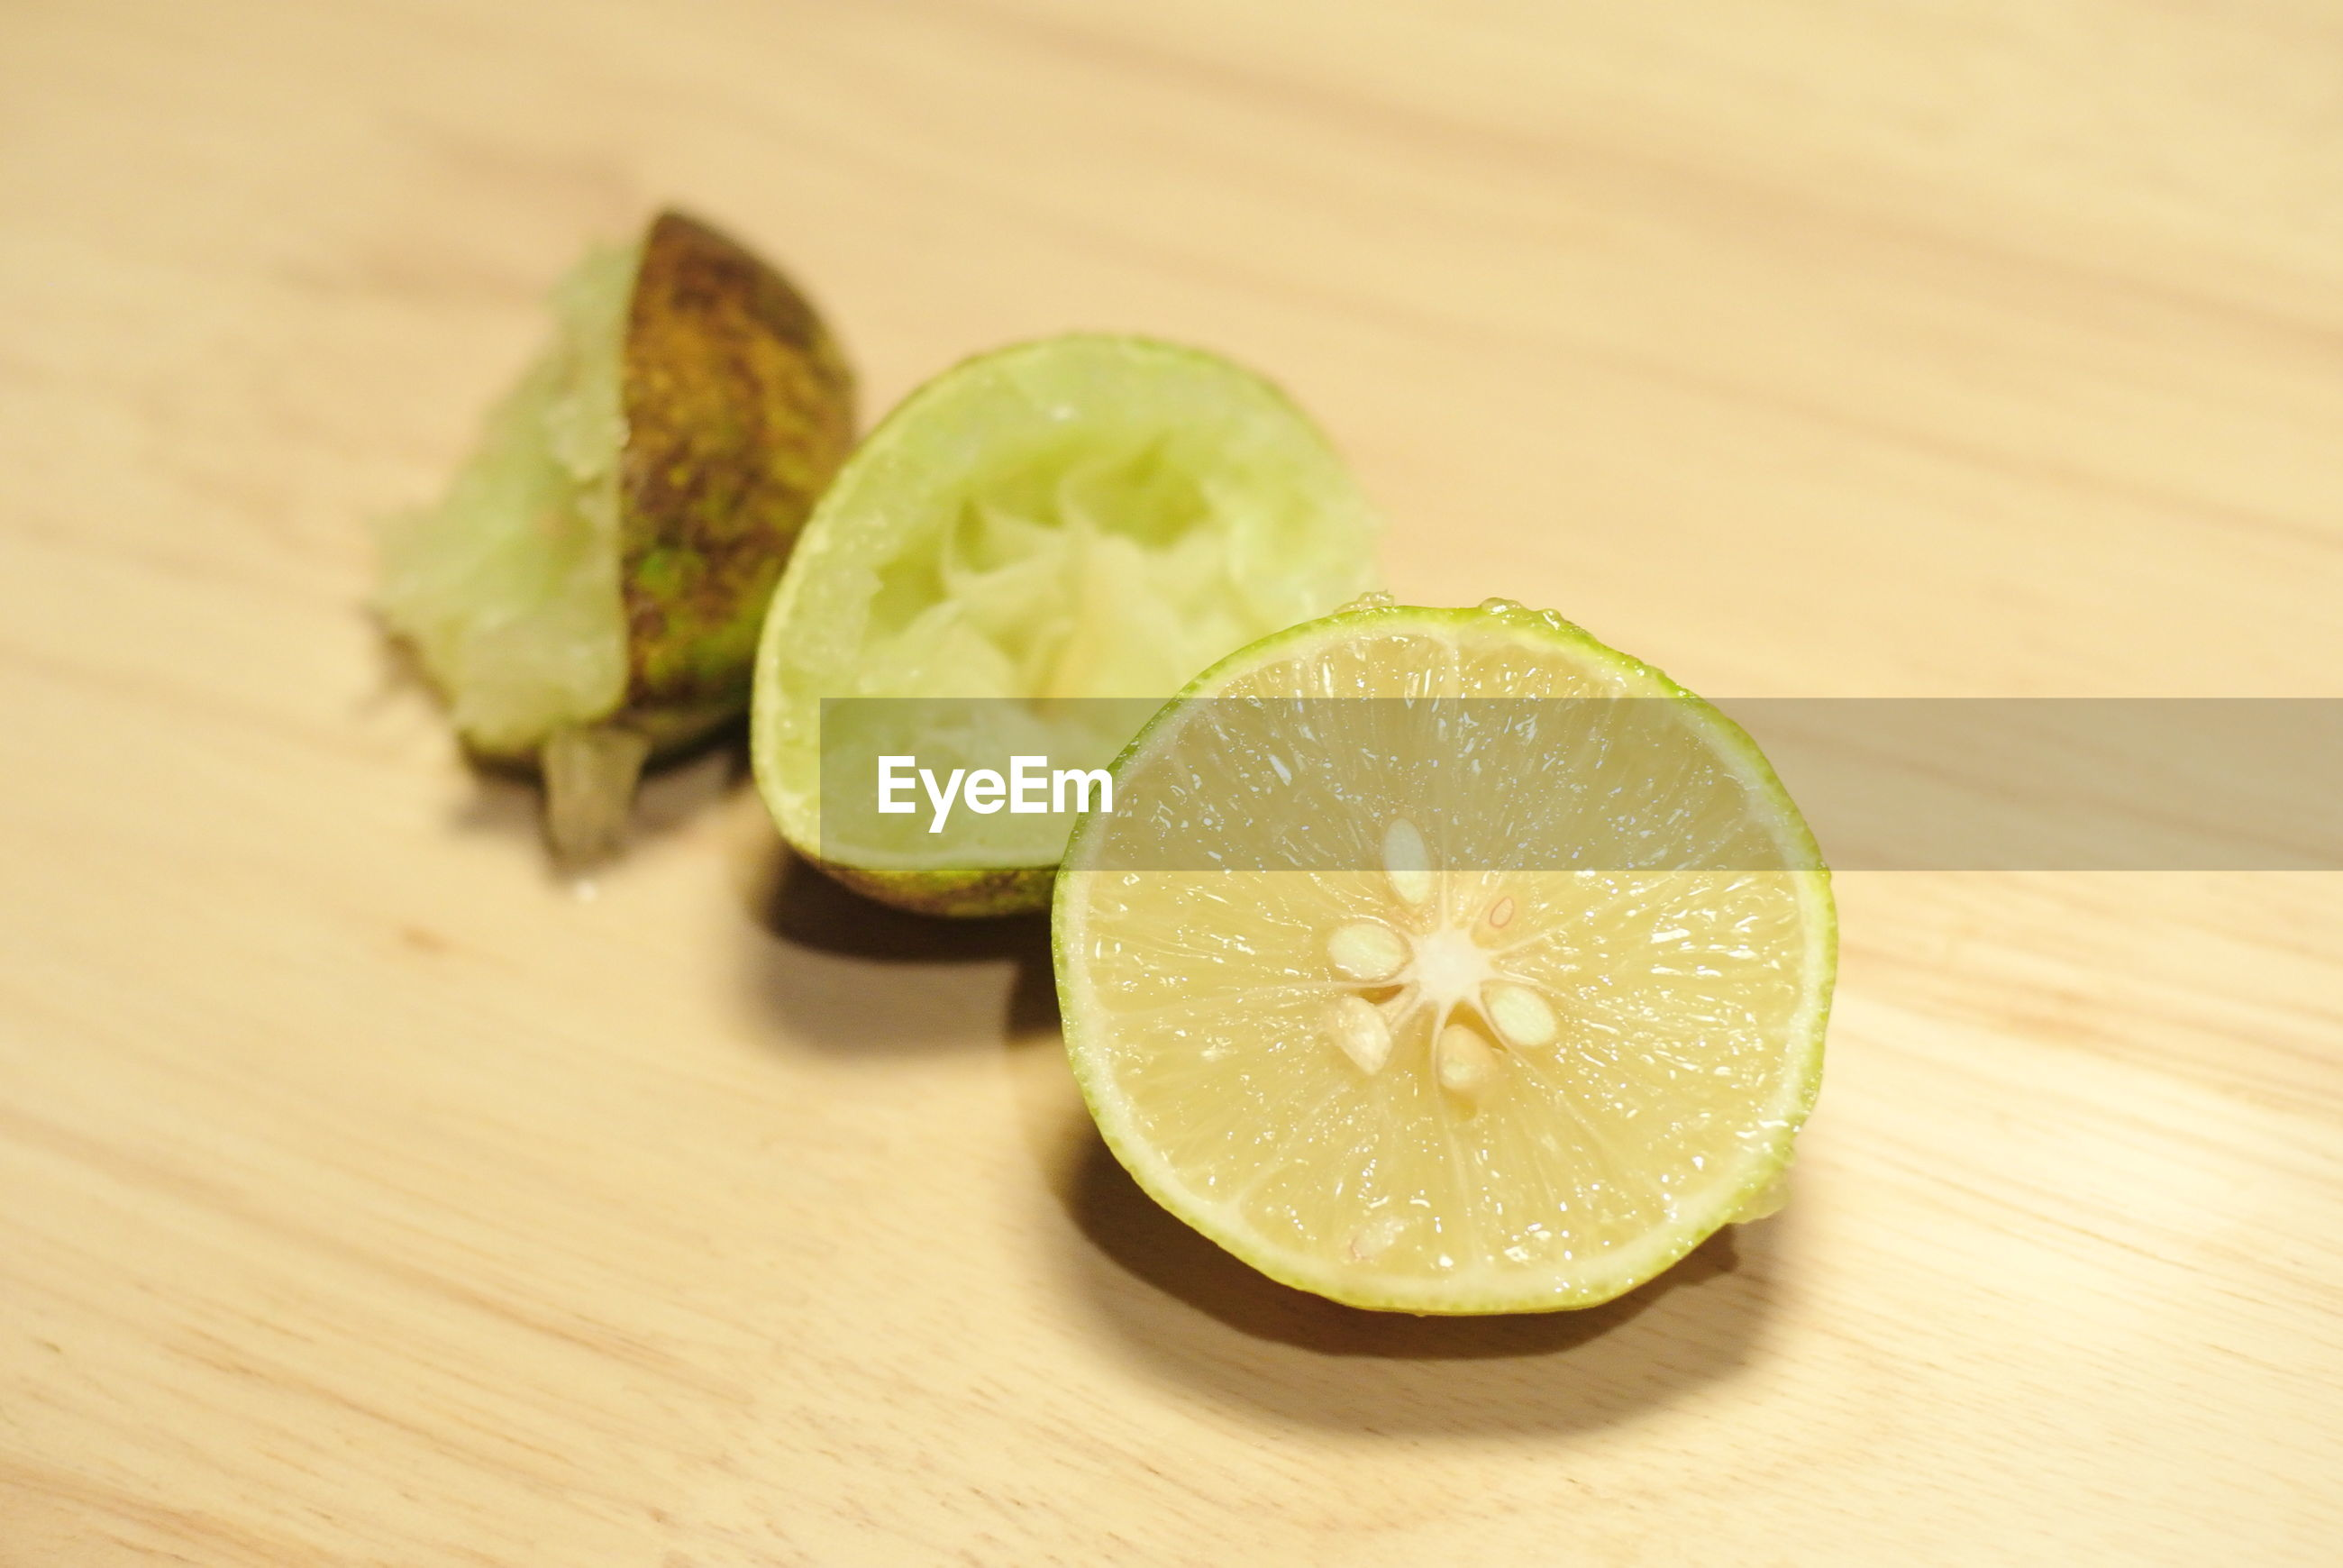 Close-up of halved lemon on wooden table